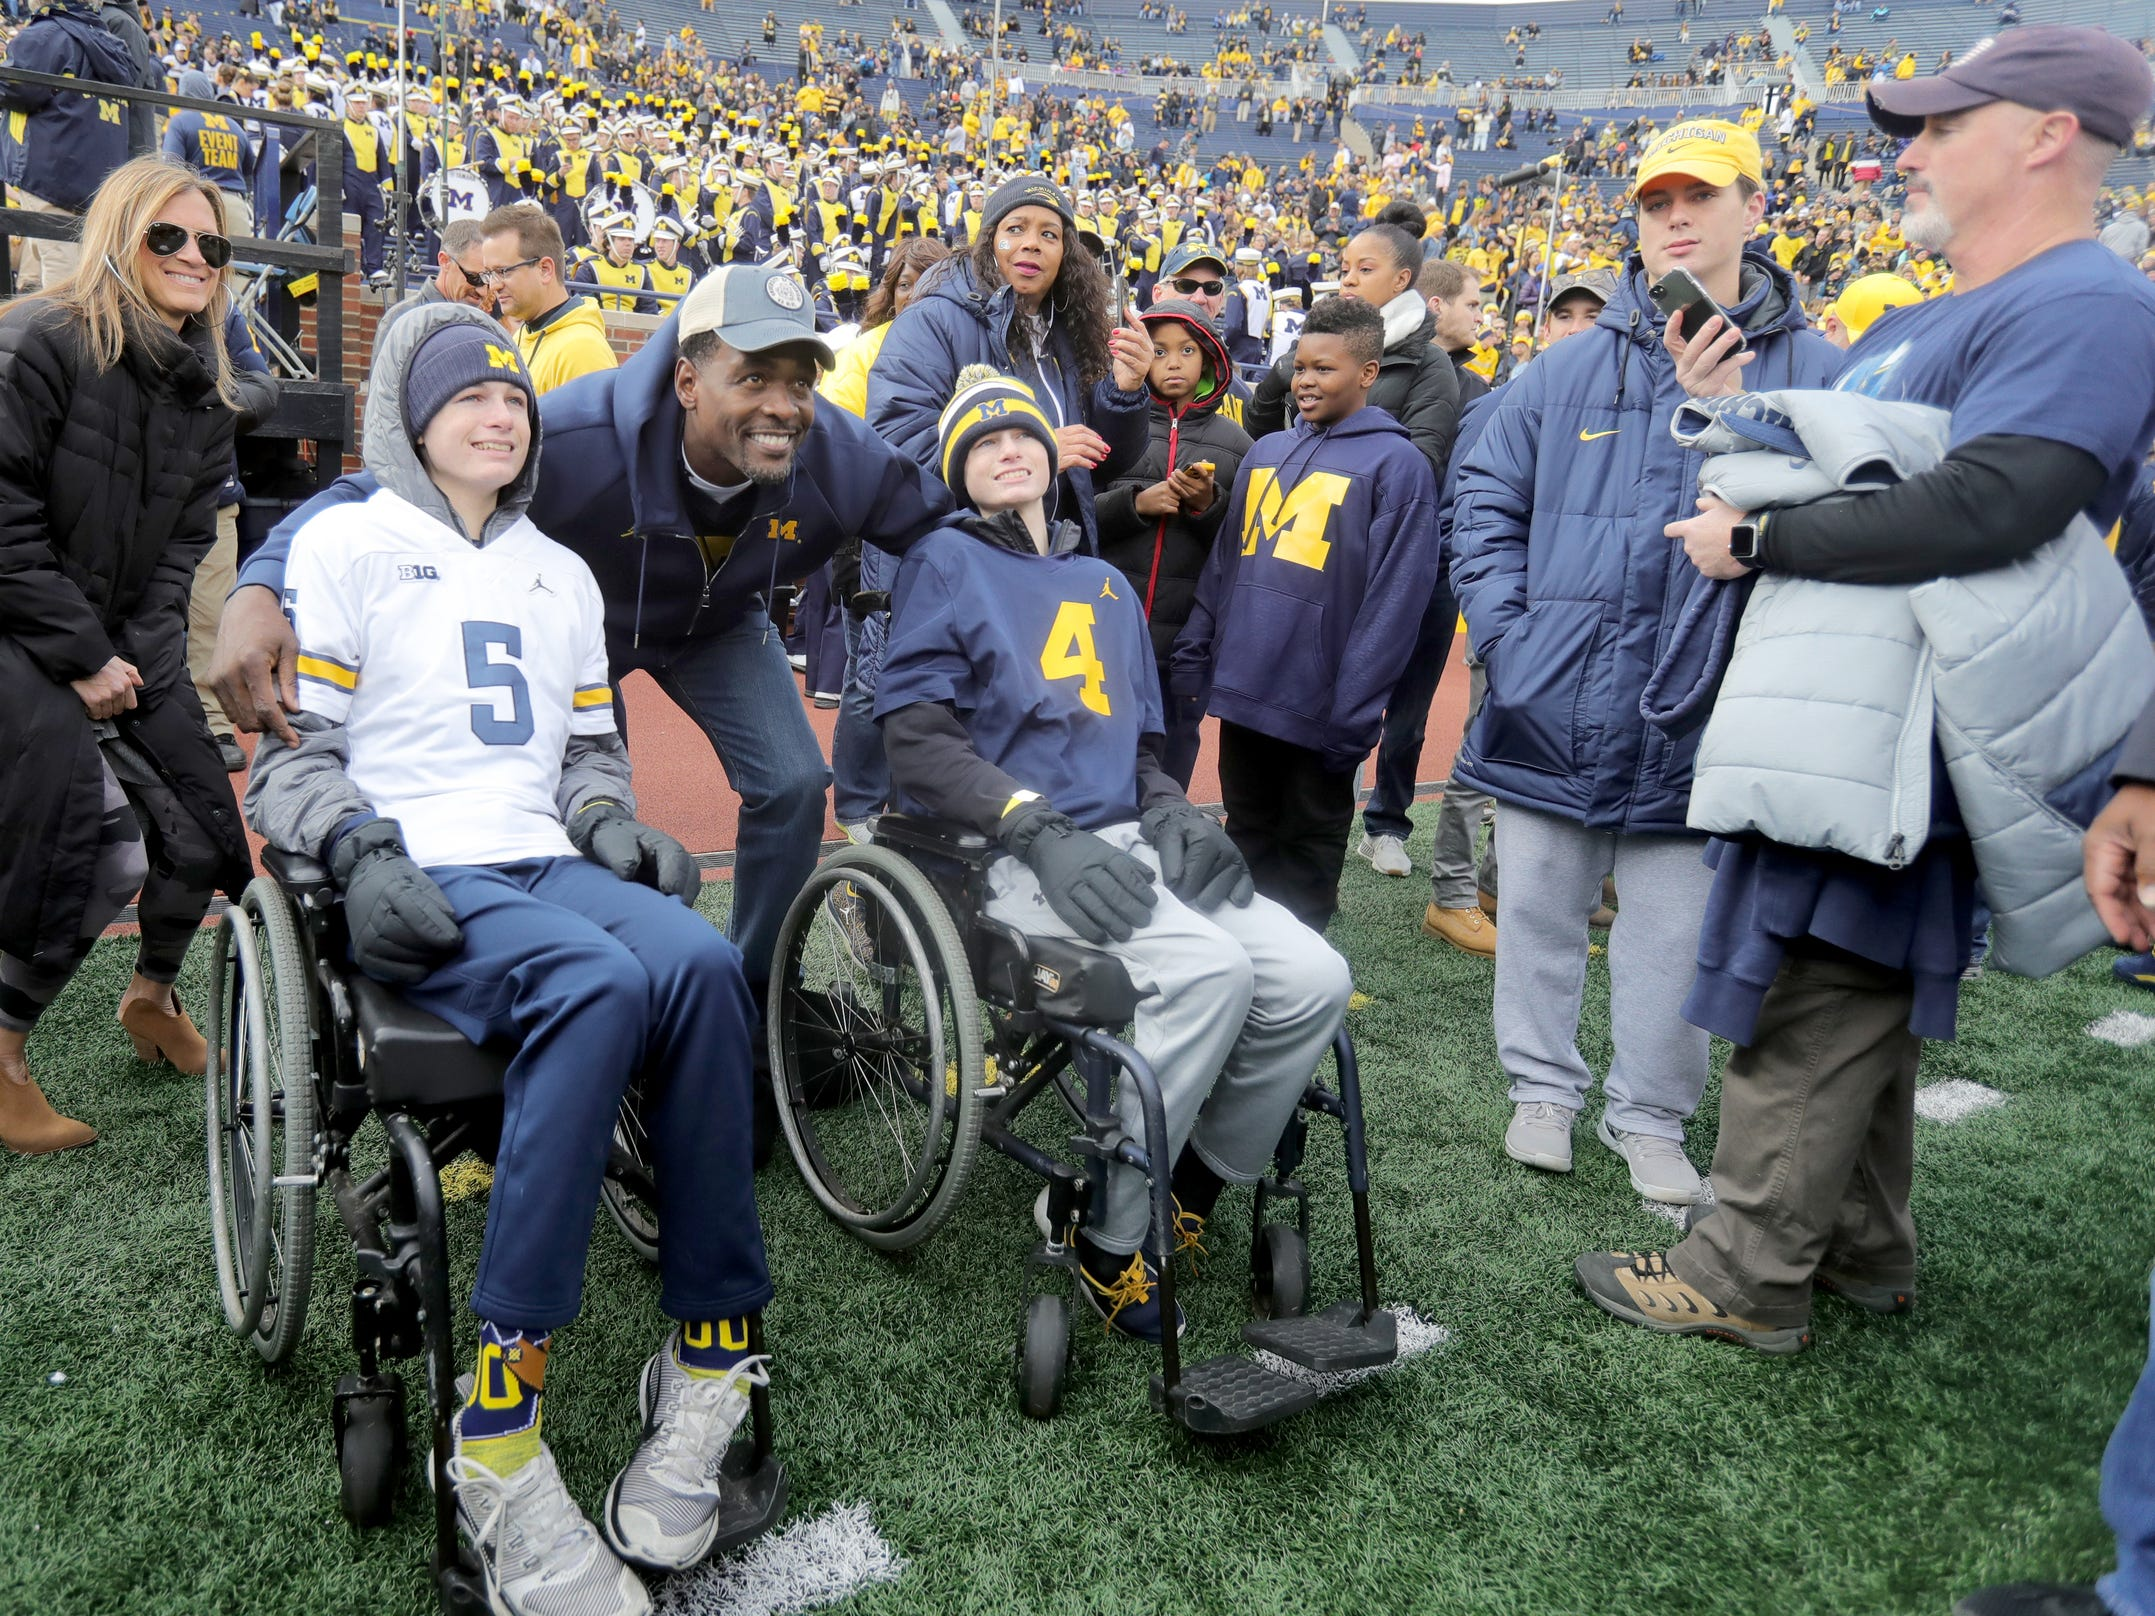 Former Michigan basketball player Chris Webber gets his picture taken with fans on the field prior to the start of the Penn State game, November 3, 2018 at Michigan Stadium in Ann Arbor.